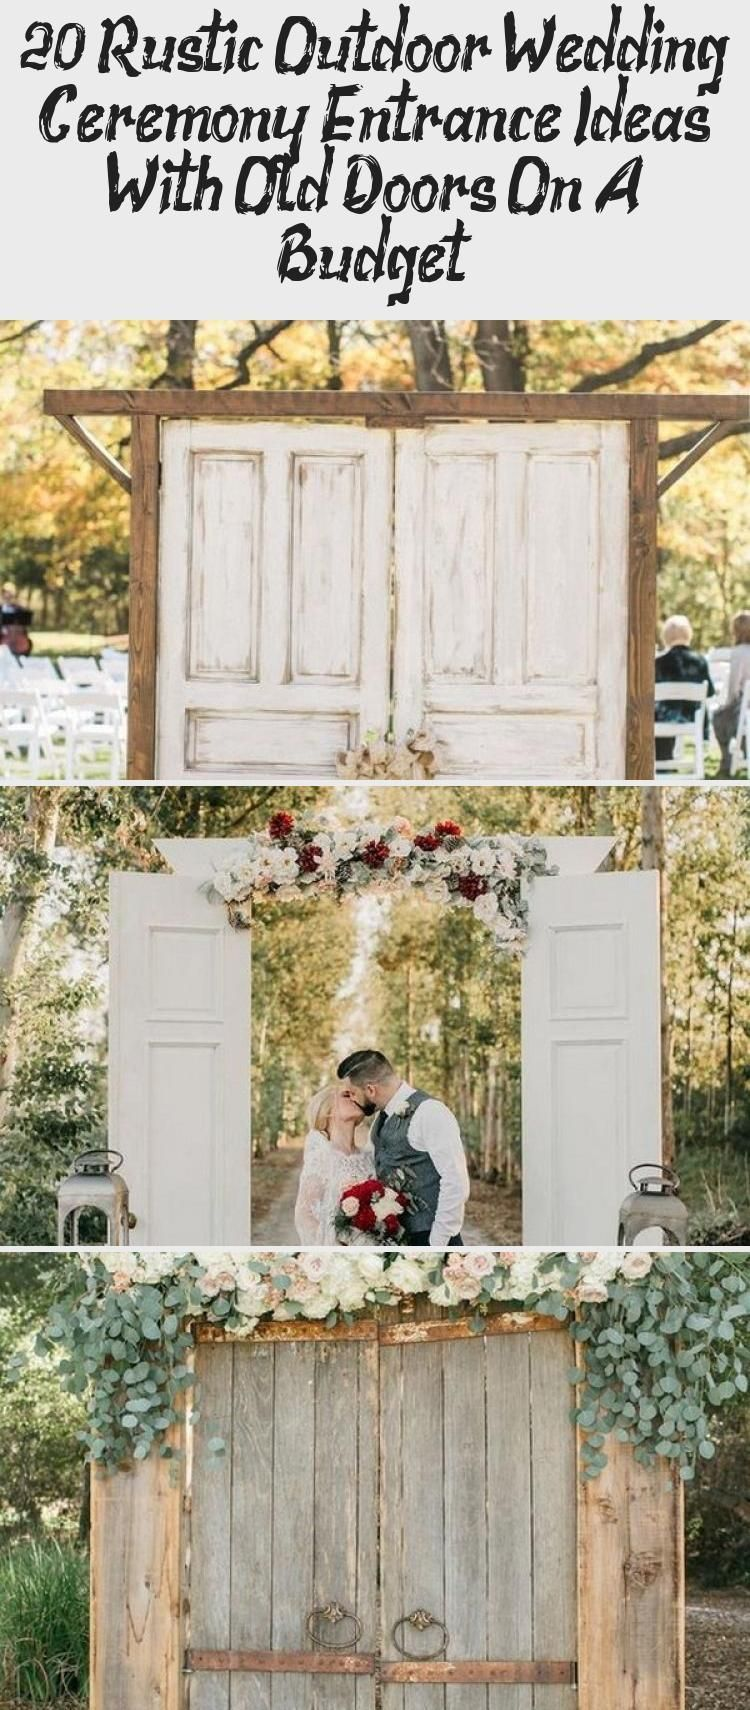 20 Rustic Outdoor Wedding Ceremony Entrance Ideas With Old Doors On A Budget Wedding Outdoor Wedding Ceremony Outdoor Wedding Entrance Rustic Outdoor Wedding